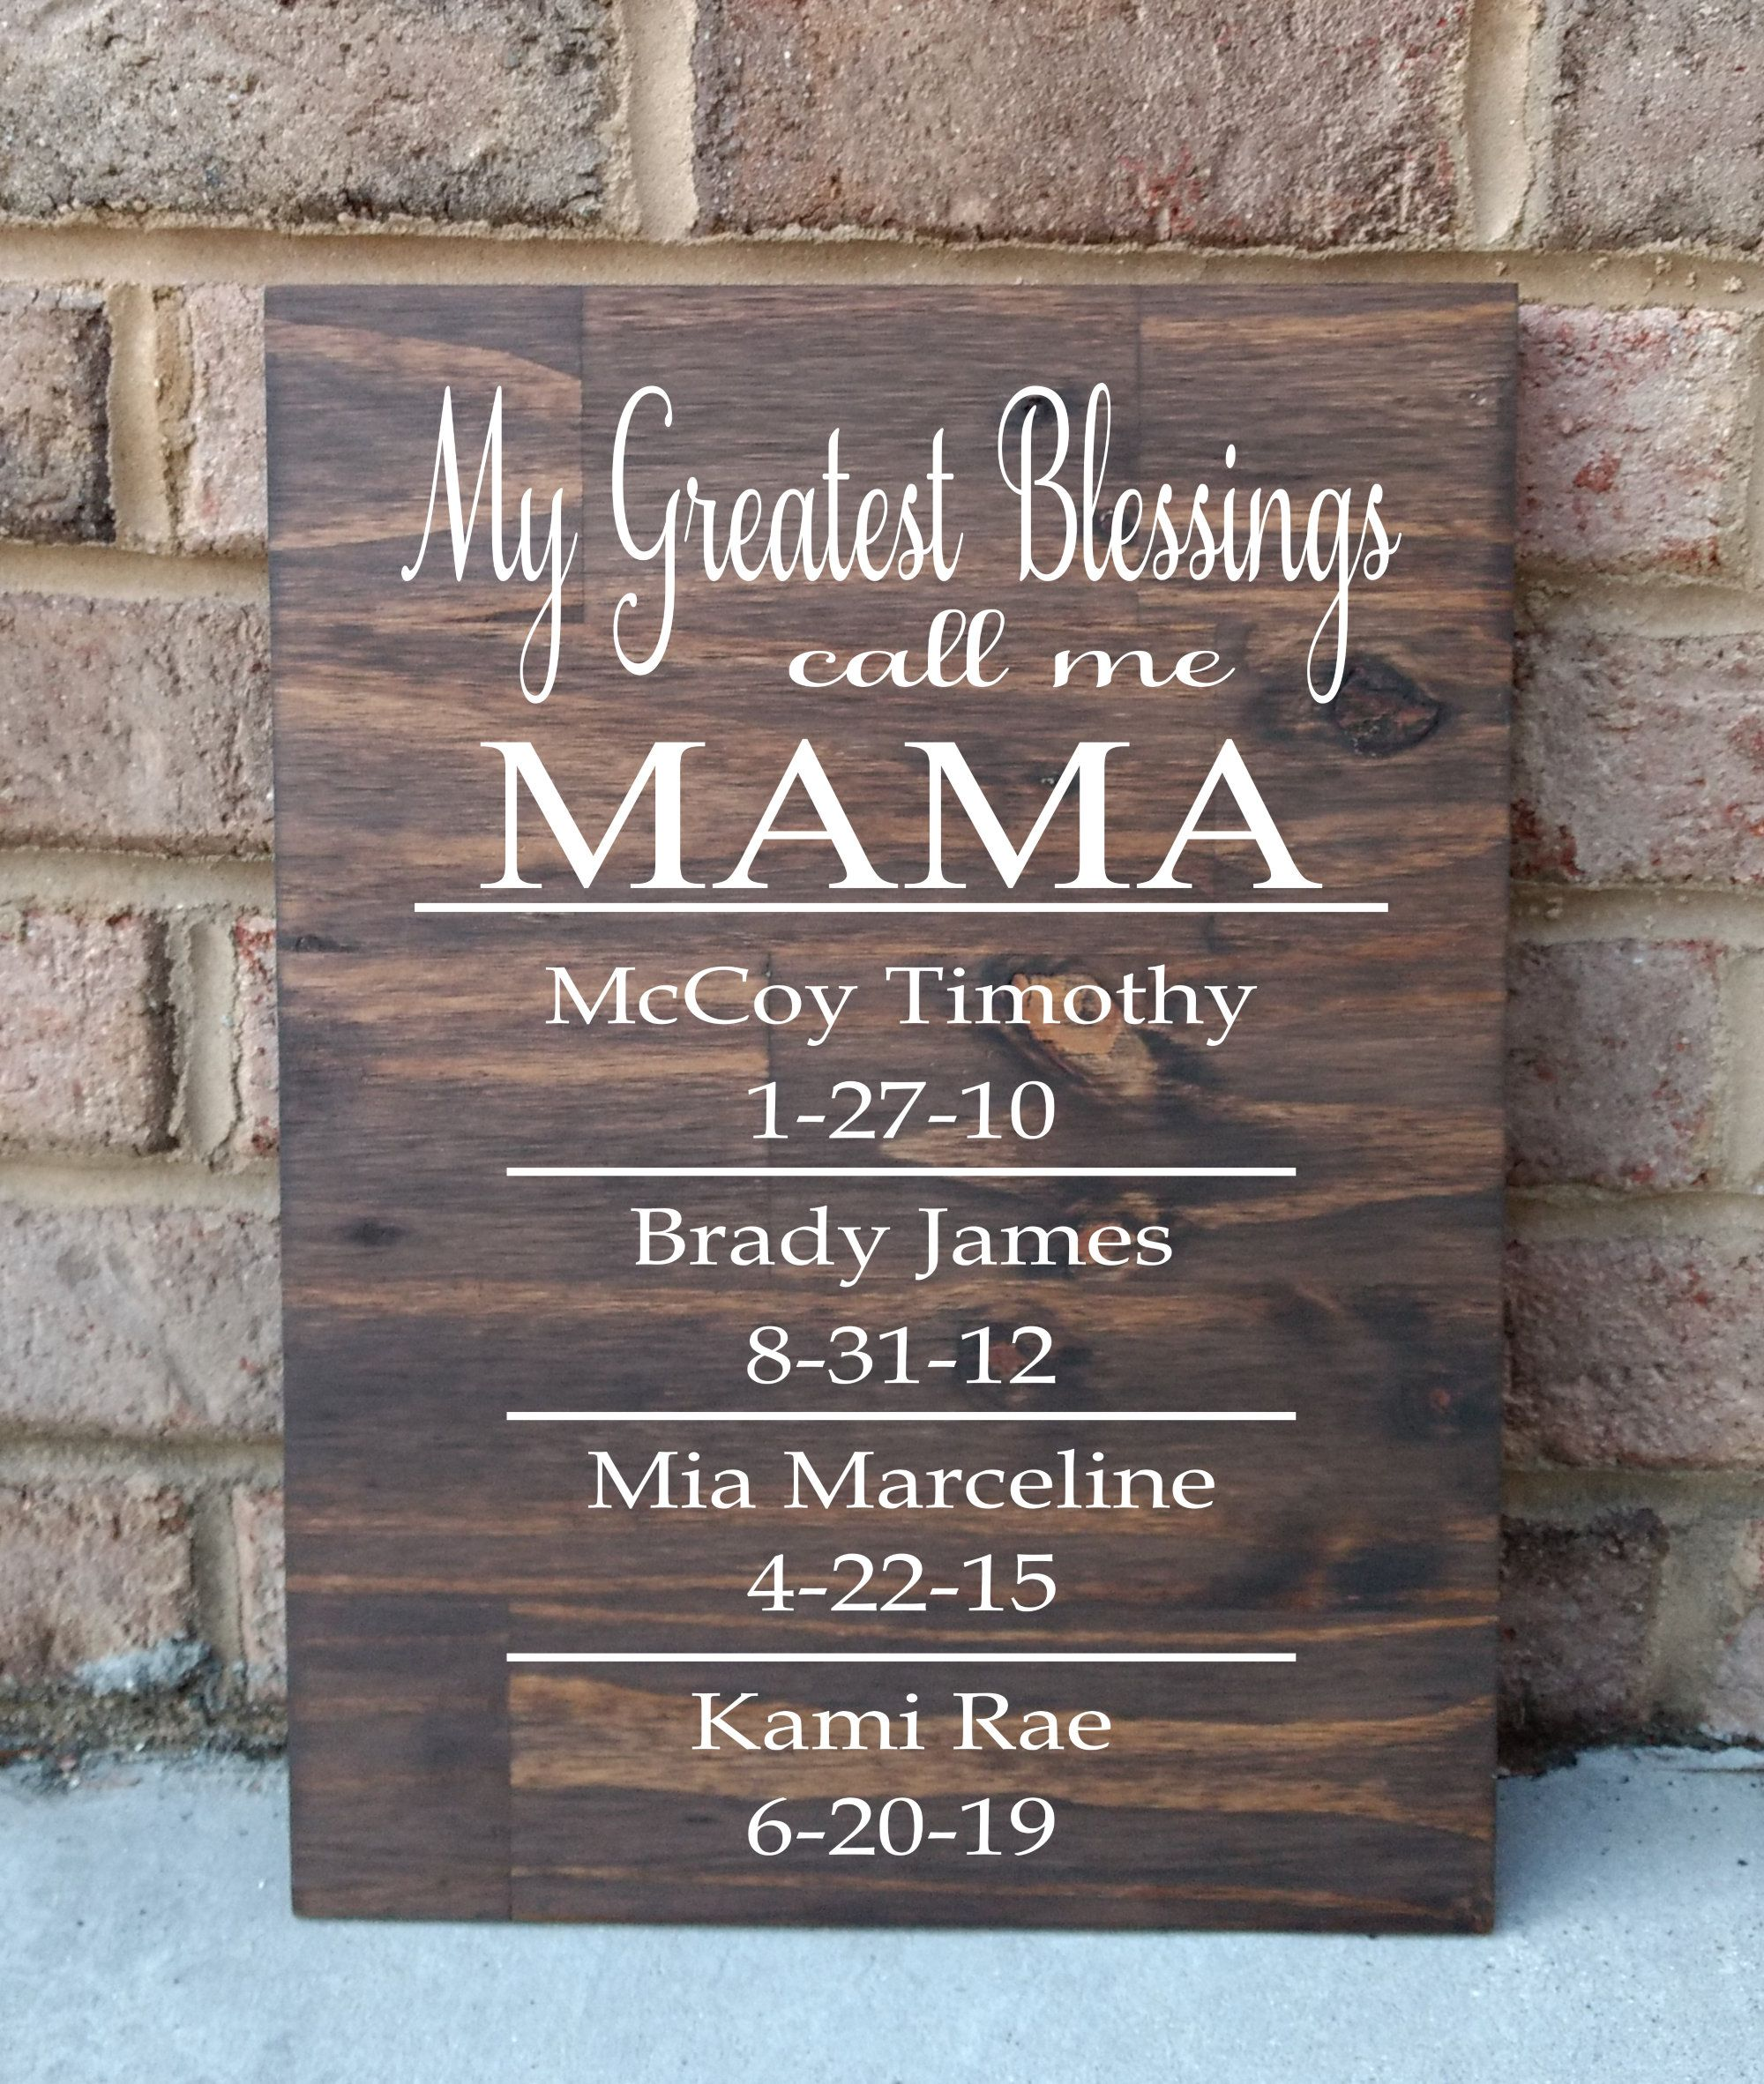 My Greatest Blessings Sign Grandchildren Sign Children Sign Gift For Grandparents Gift For Parents Gifts For Grandparents Grandchildren Sign Parent Gifts